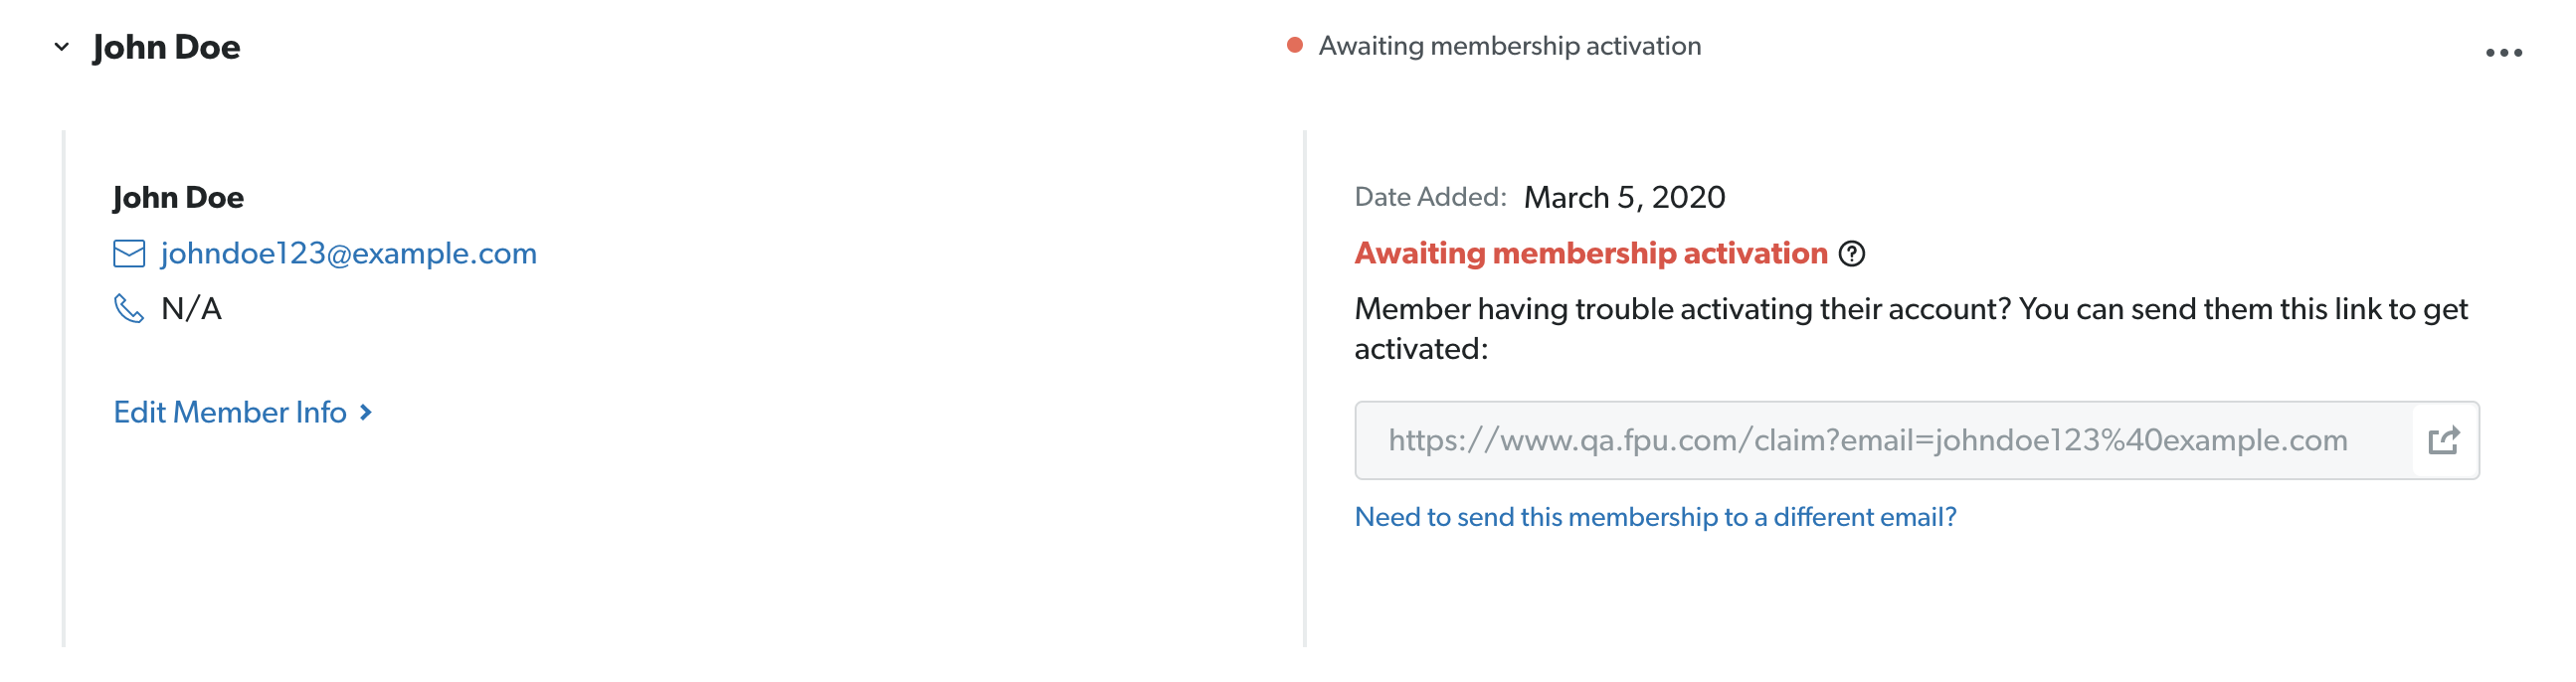 Send_Memberships_3.png